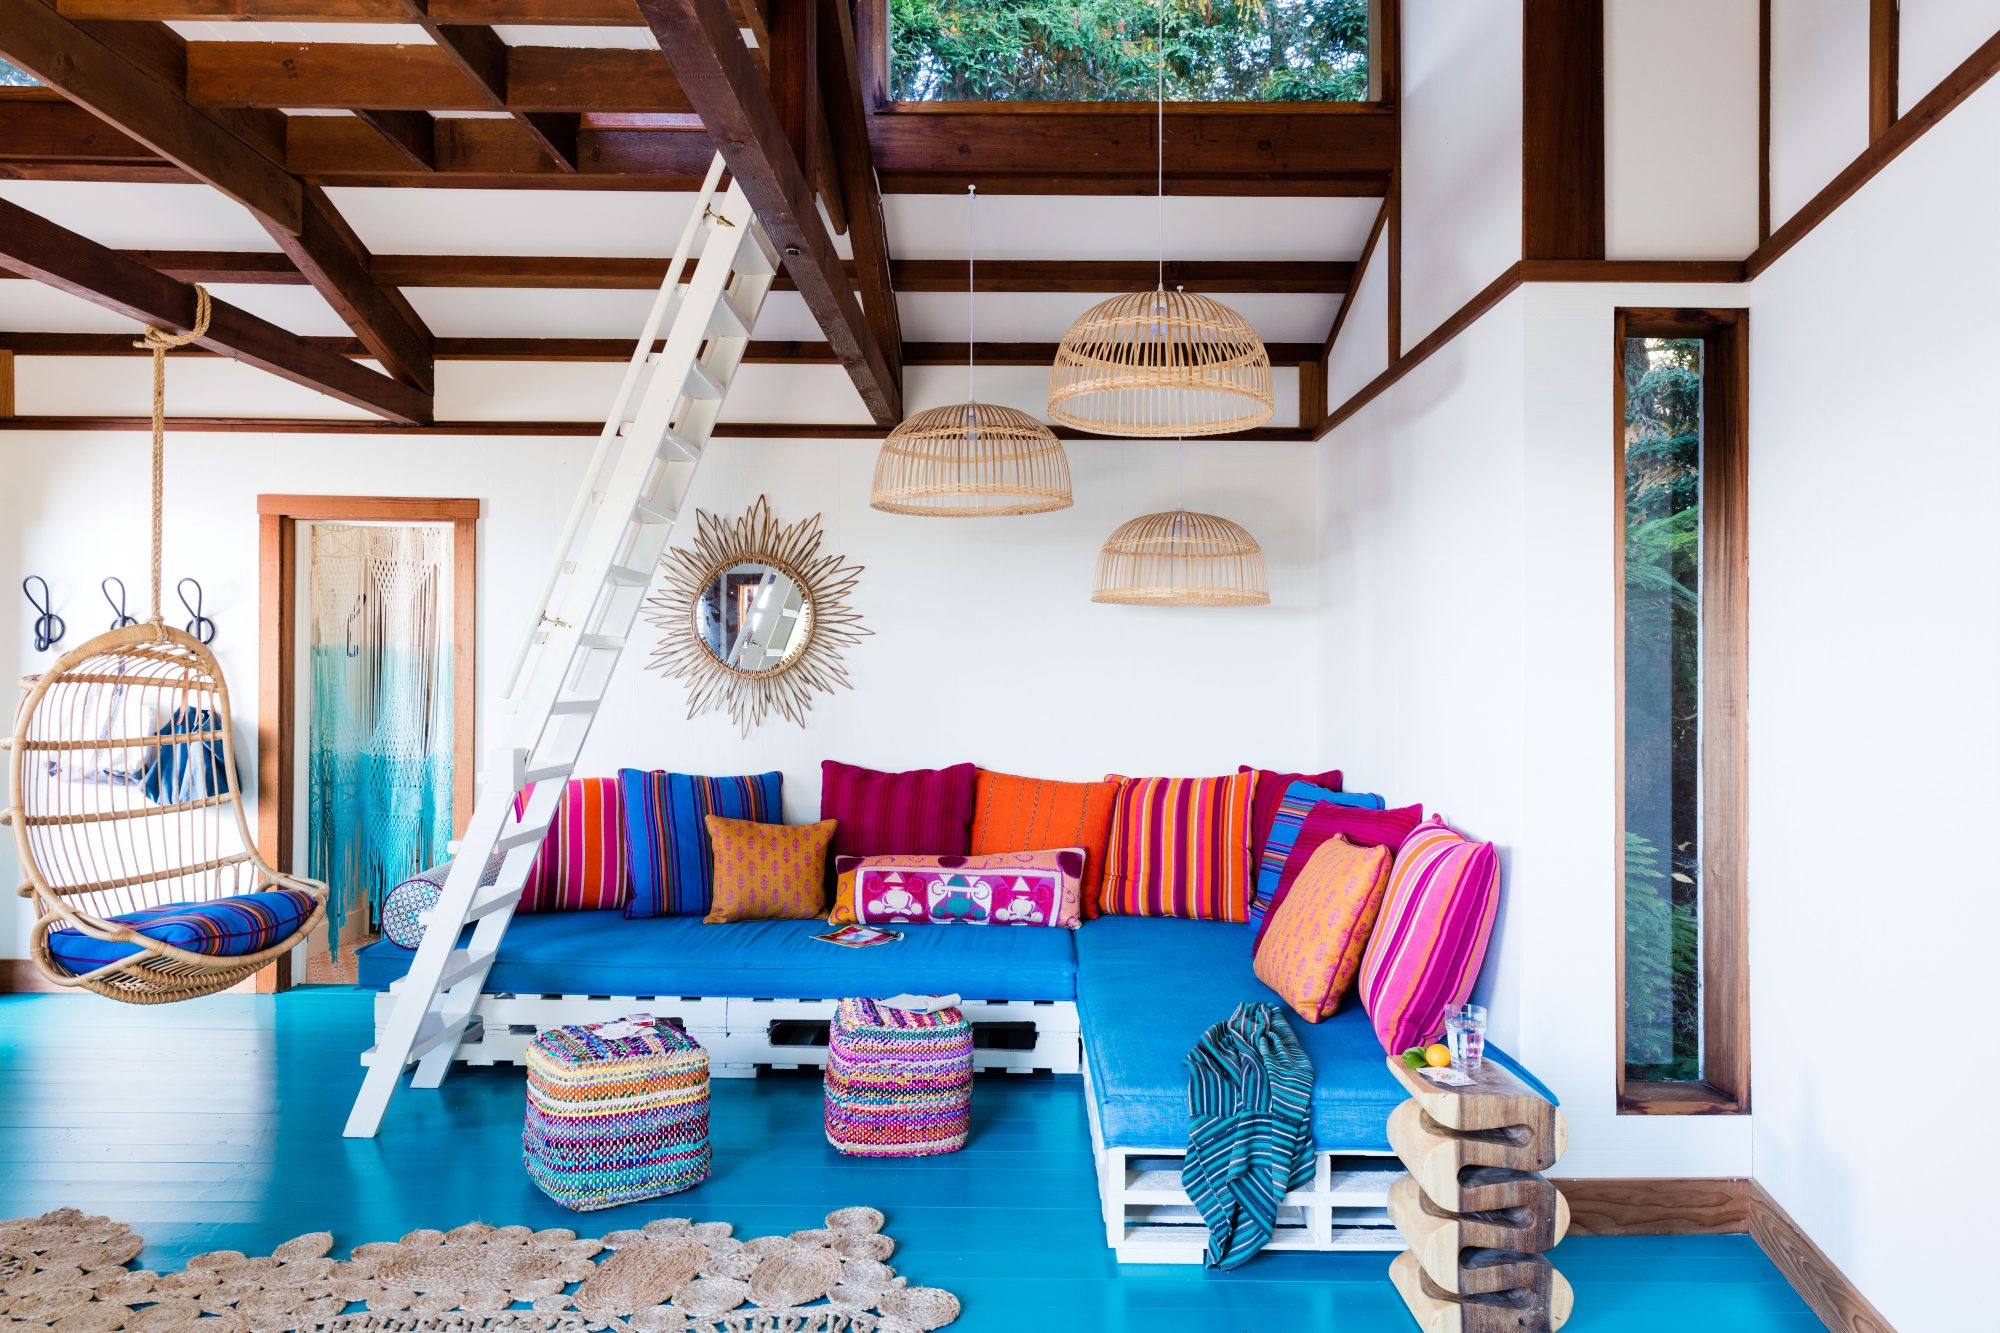 Get the Blues: Venezuelan Sea by Benjamin Moore                                       Give brilliant blues the floor … literally. In this Stinson Beach, California, rancher, which once belonged to Jerry Garcia of the Grateful Dead, designer Allison Bloom transformed the former recording studio into a want-to-hang-out-there-all-day guesthouse and lounge. Jewel-toned pillows wrapped in vintage Indian silks and linens and a shipping-pallet sectional give the room an extra jolt of groovy, throwback vibes.